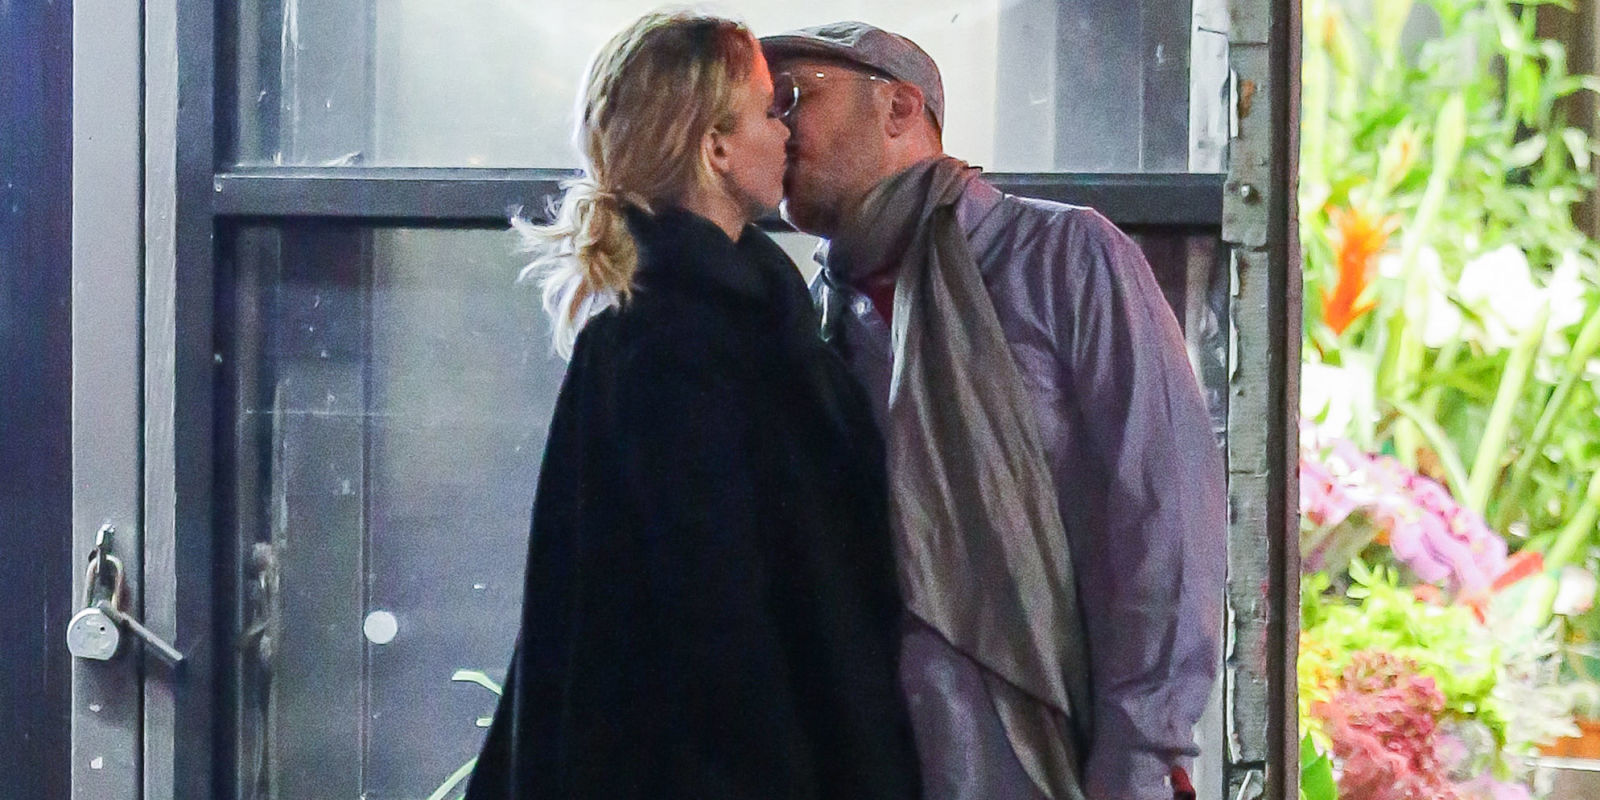 Jennifer Lawrence Spotted Kissing Darren Aronofsky in NYC